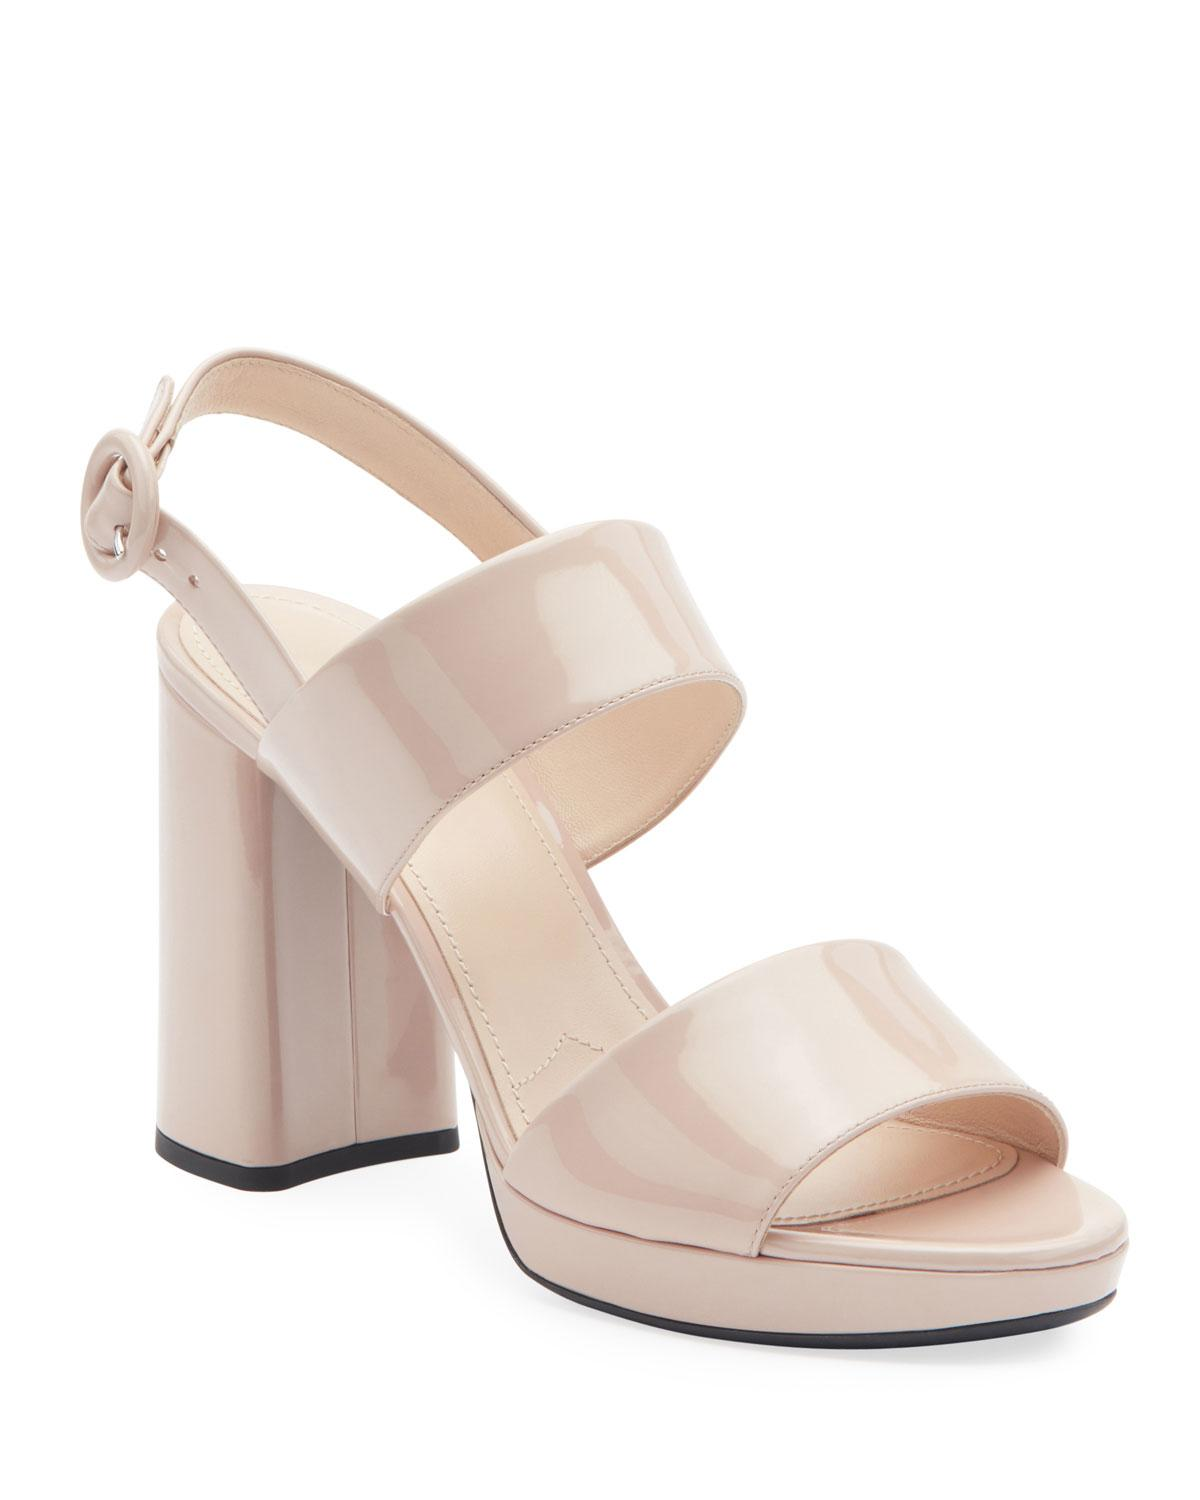 2565f65a0f9 Lyst - Prada Patent Platform Two-band Sandals in Natural